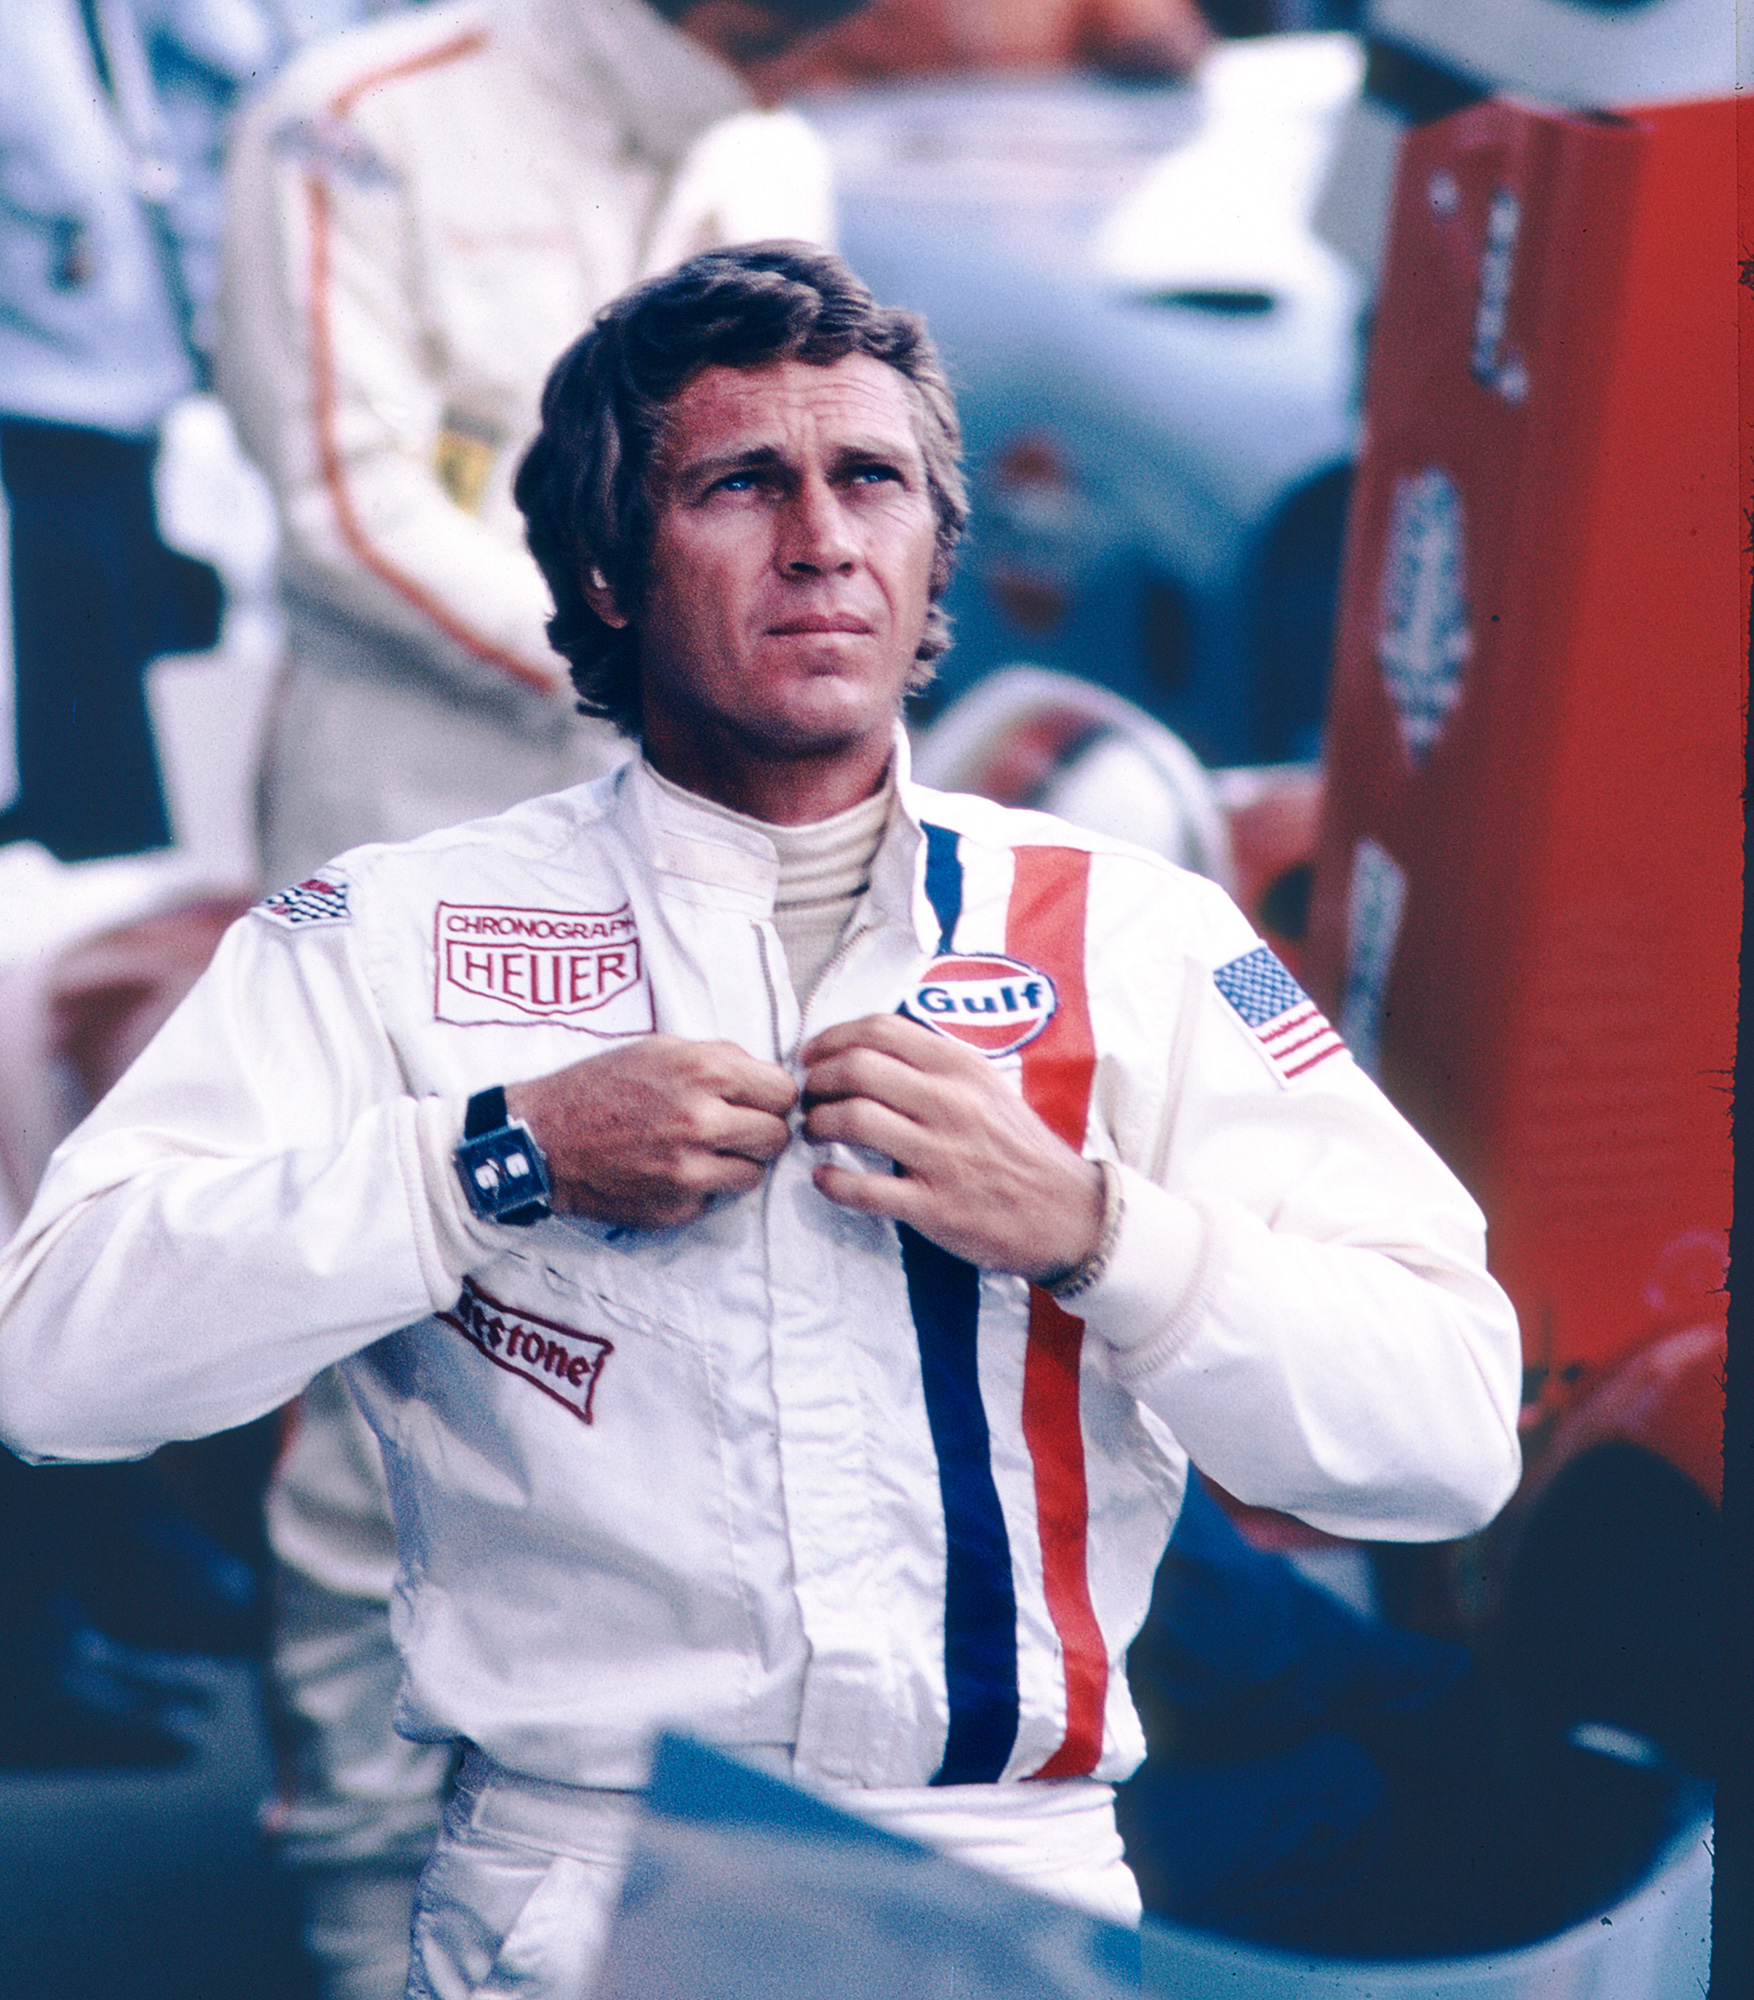 Steve McQueen in the film Le Mans